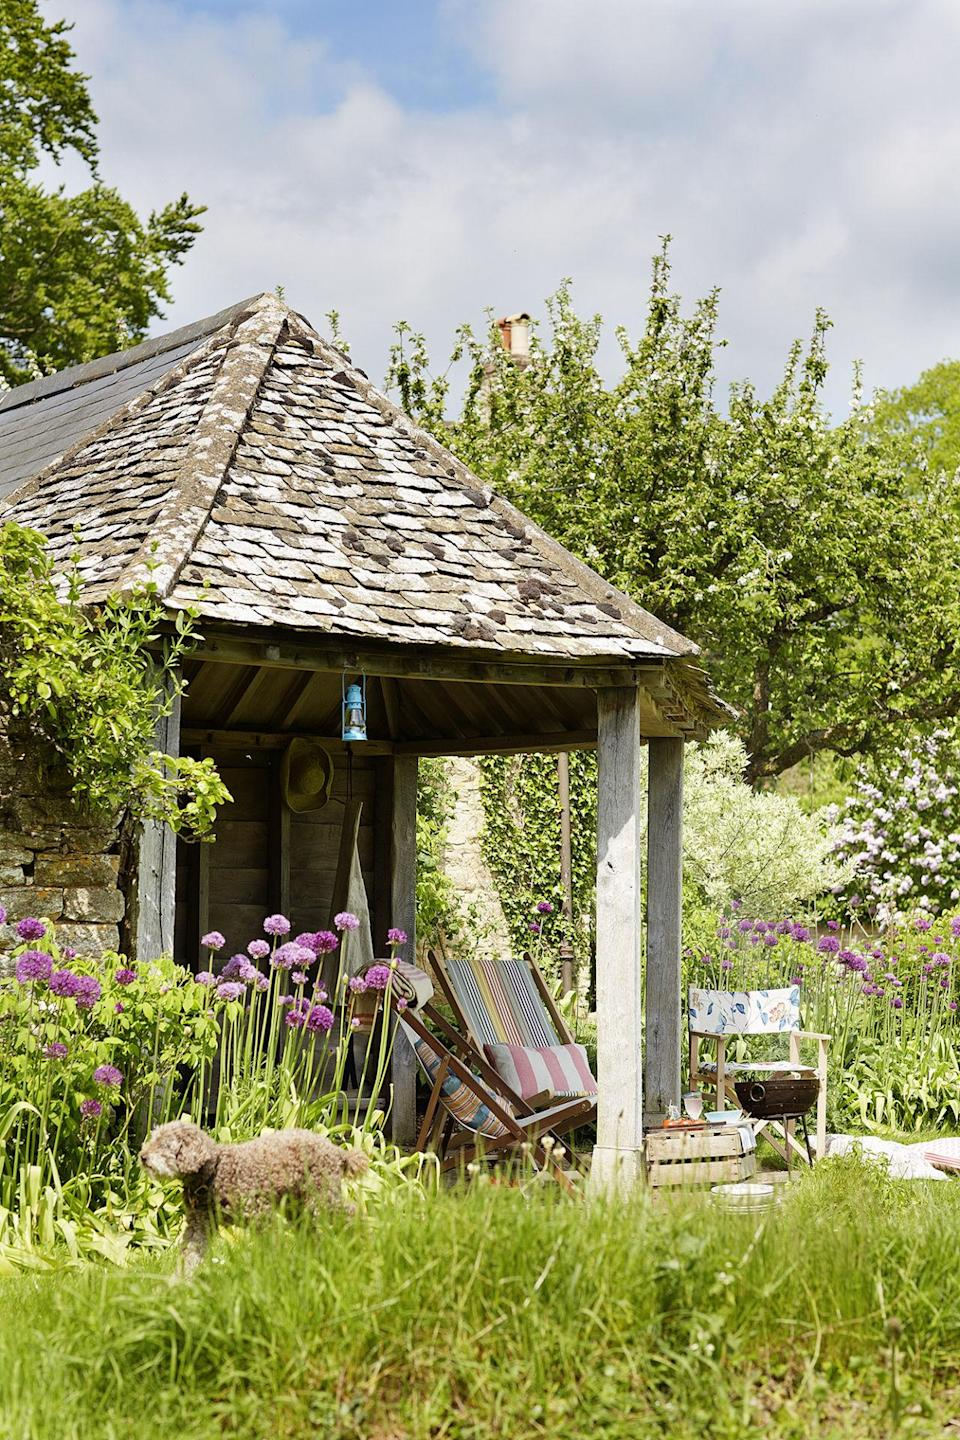 <p>A bespoke open-sided garden building made of green-oak timber and reclaimed limestone provides an ideal place to admire the garden.</p>